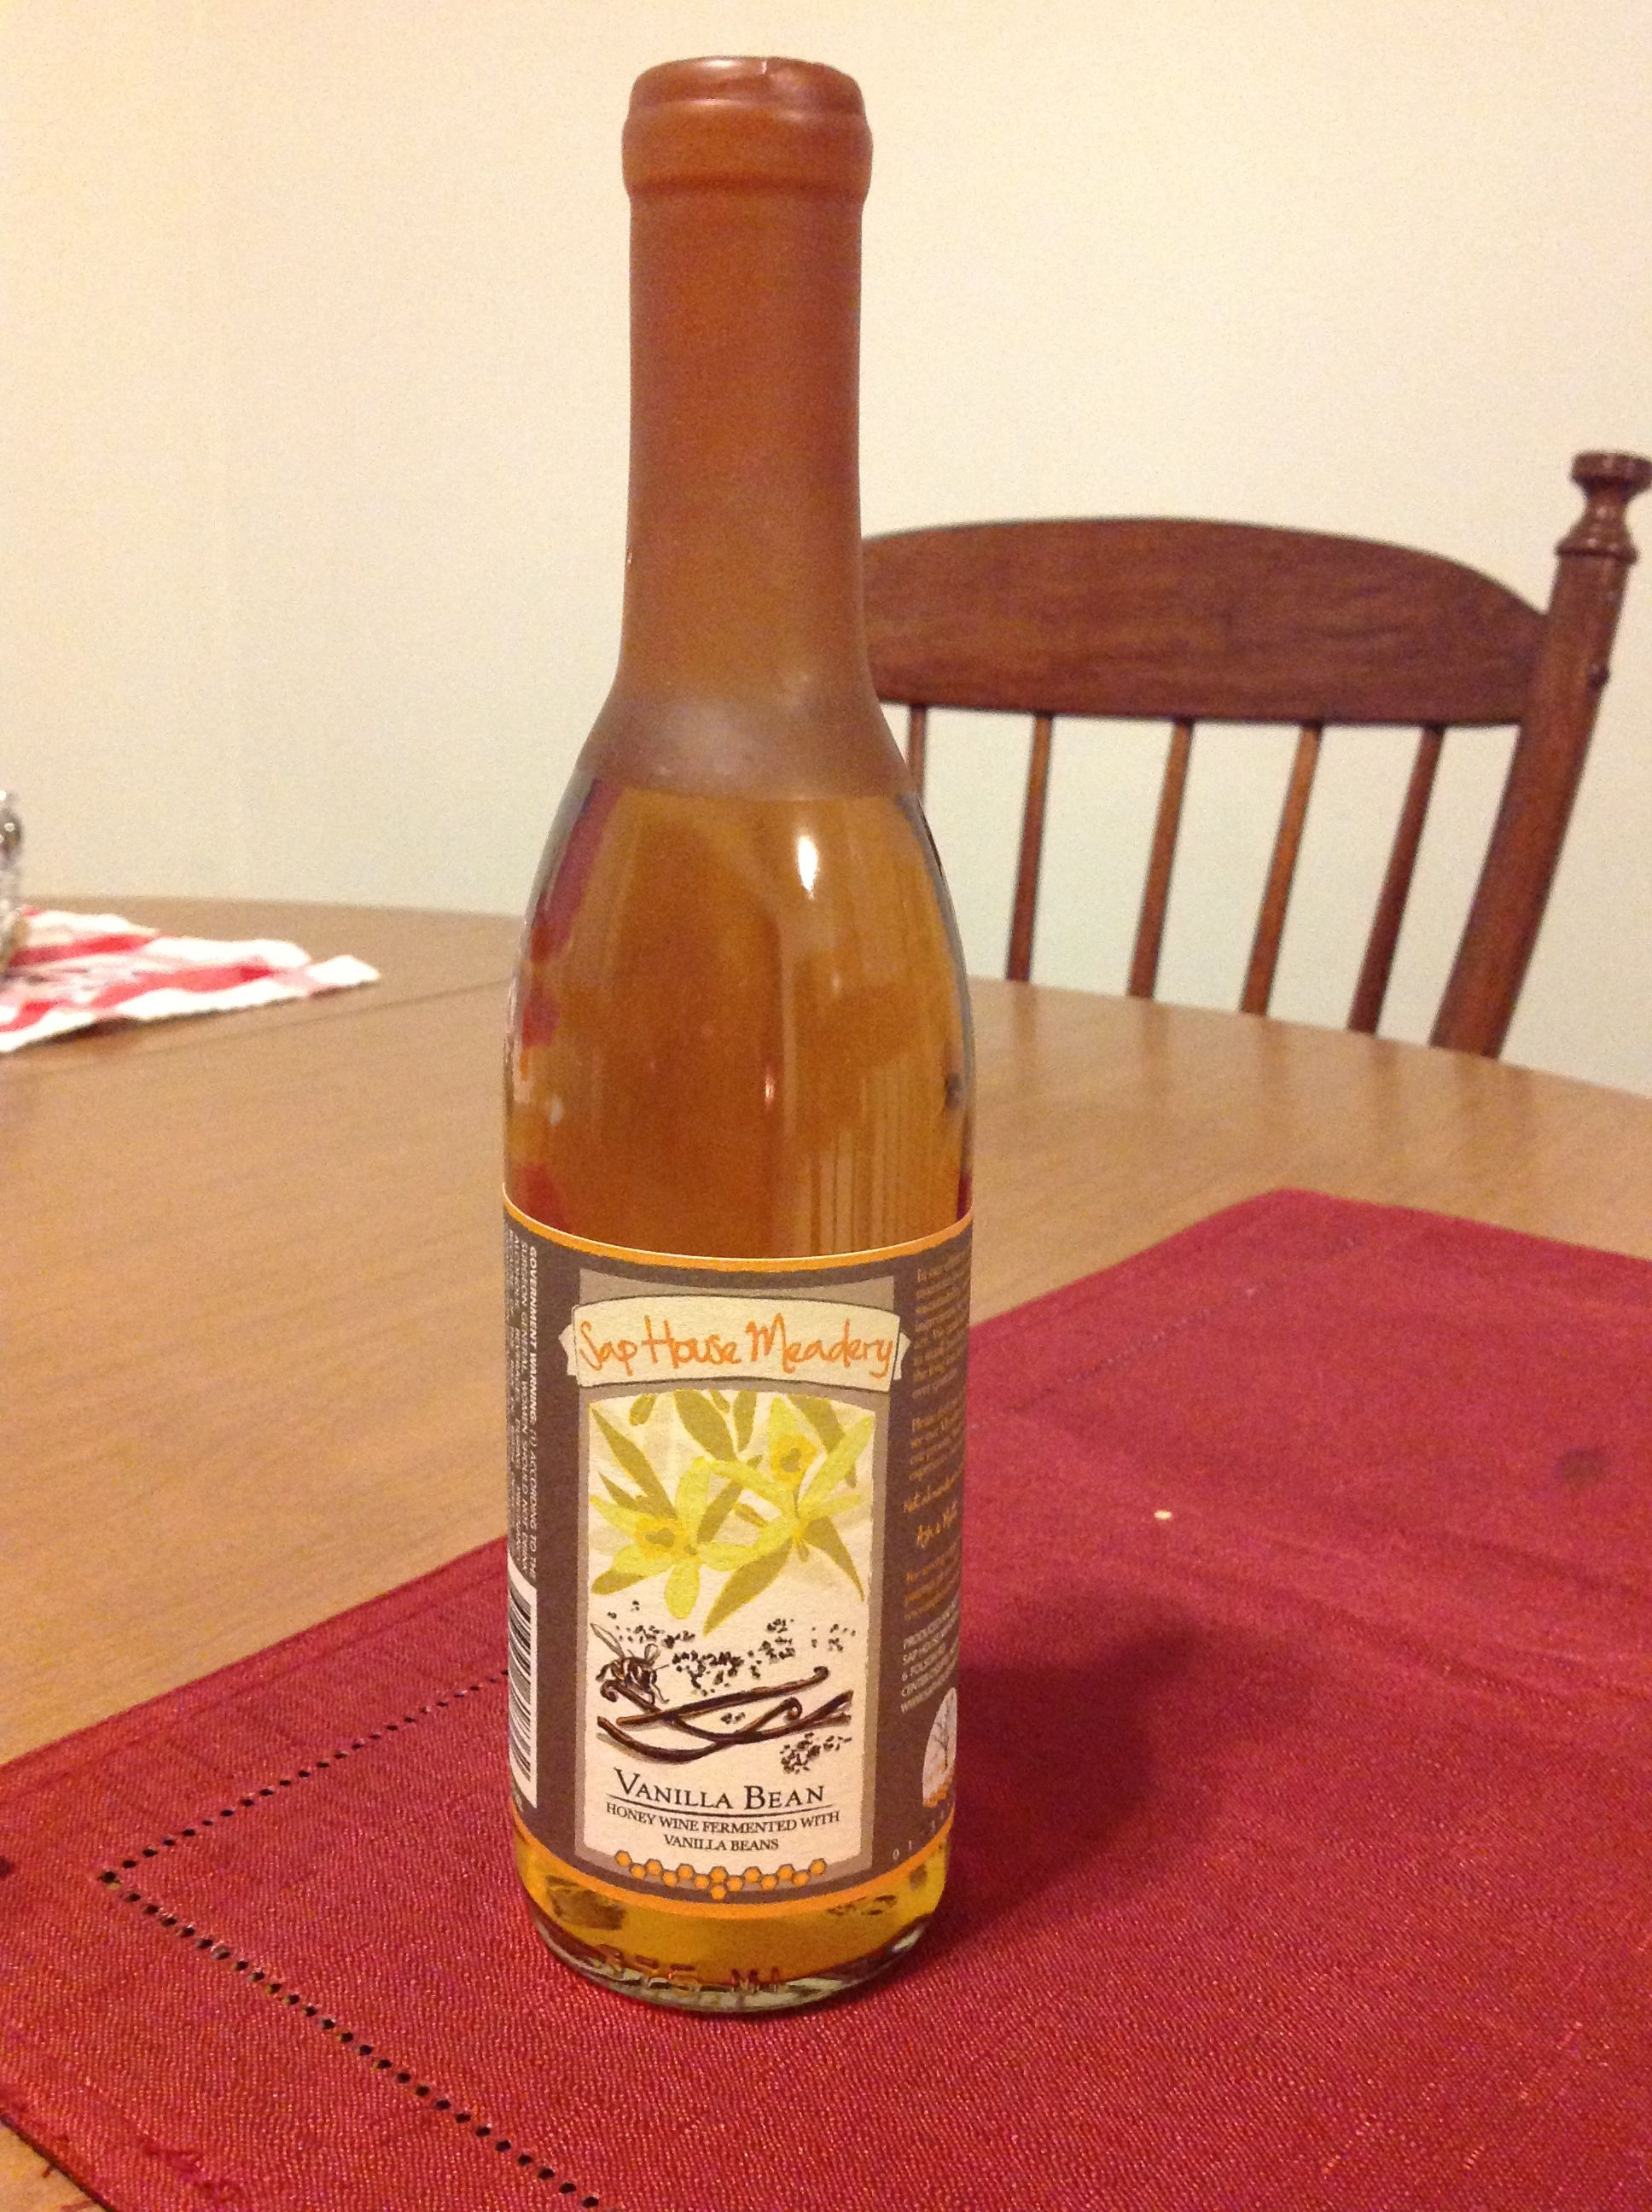 Sap House Meadery Center Ossipee Nh This Vanilla Bean Mead Is Delicious Gold Peak Tea Bottle Vanilla Bean Tea Bottle